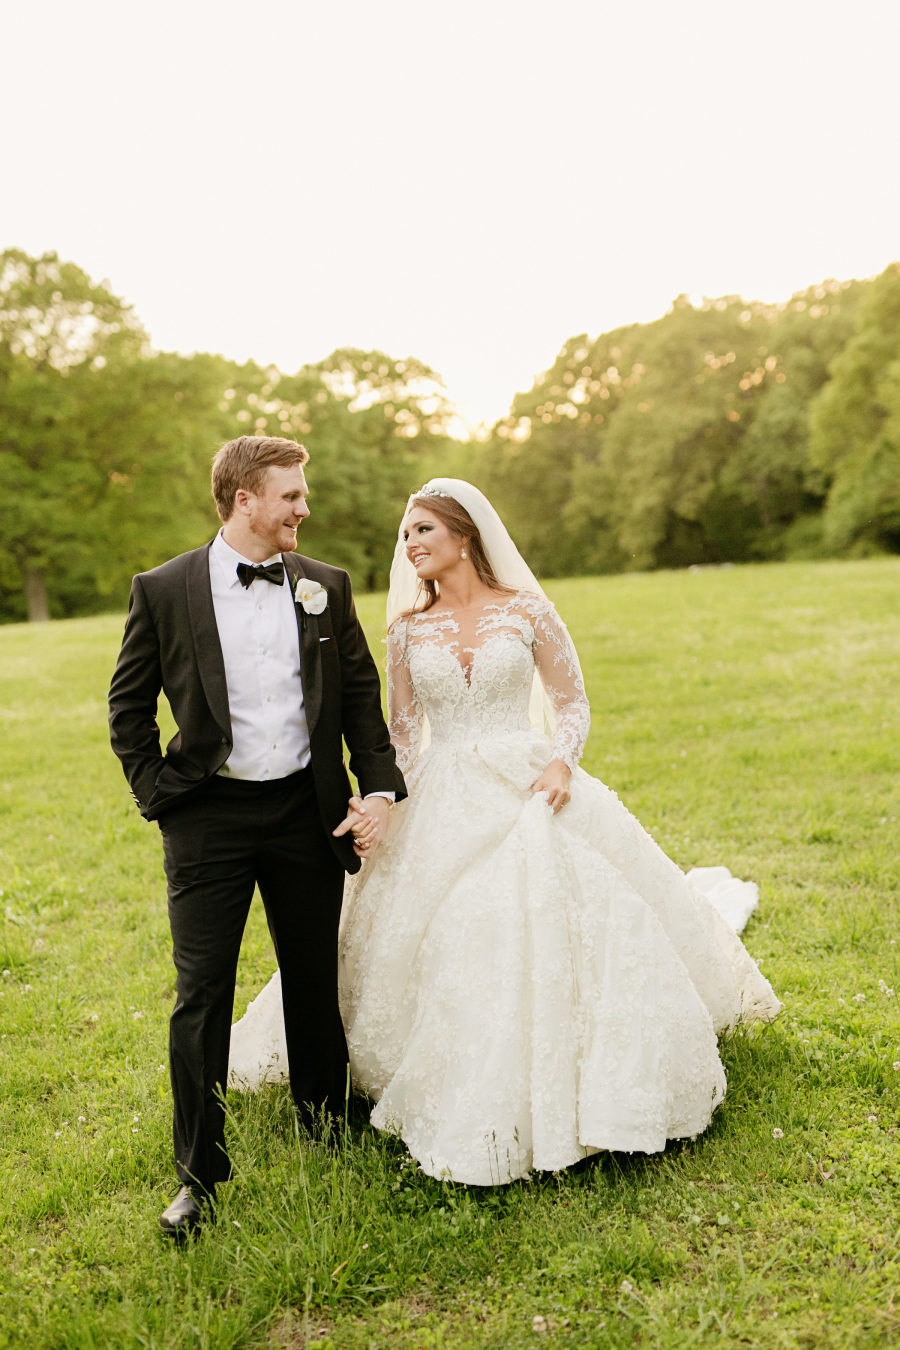 Collins Tuohy of The Blind Side Shares Her Wedding Photos